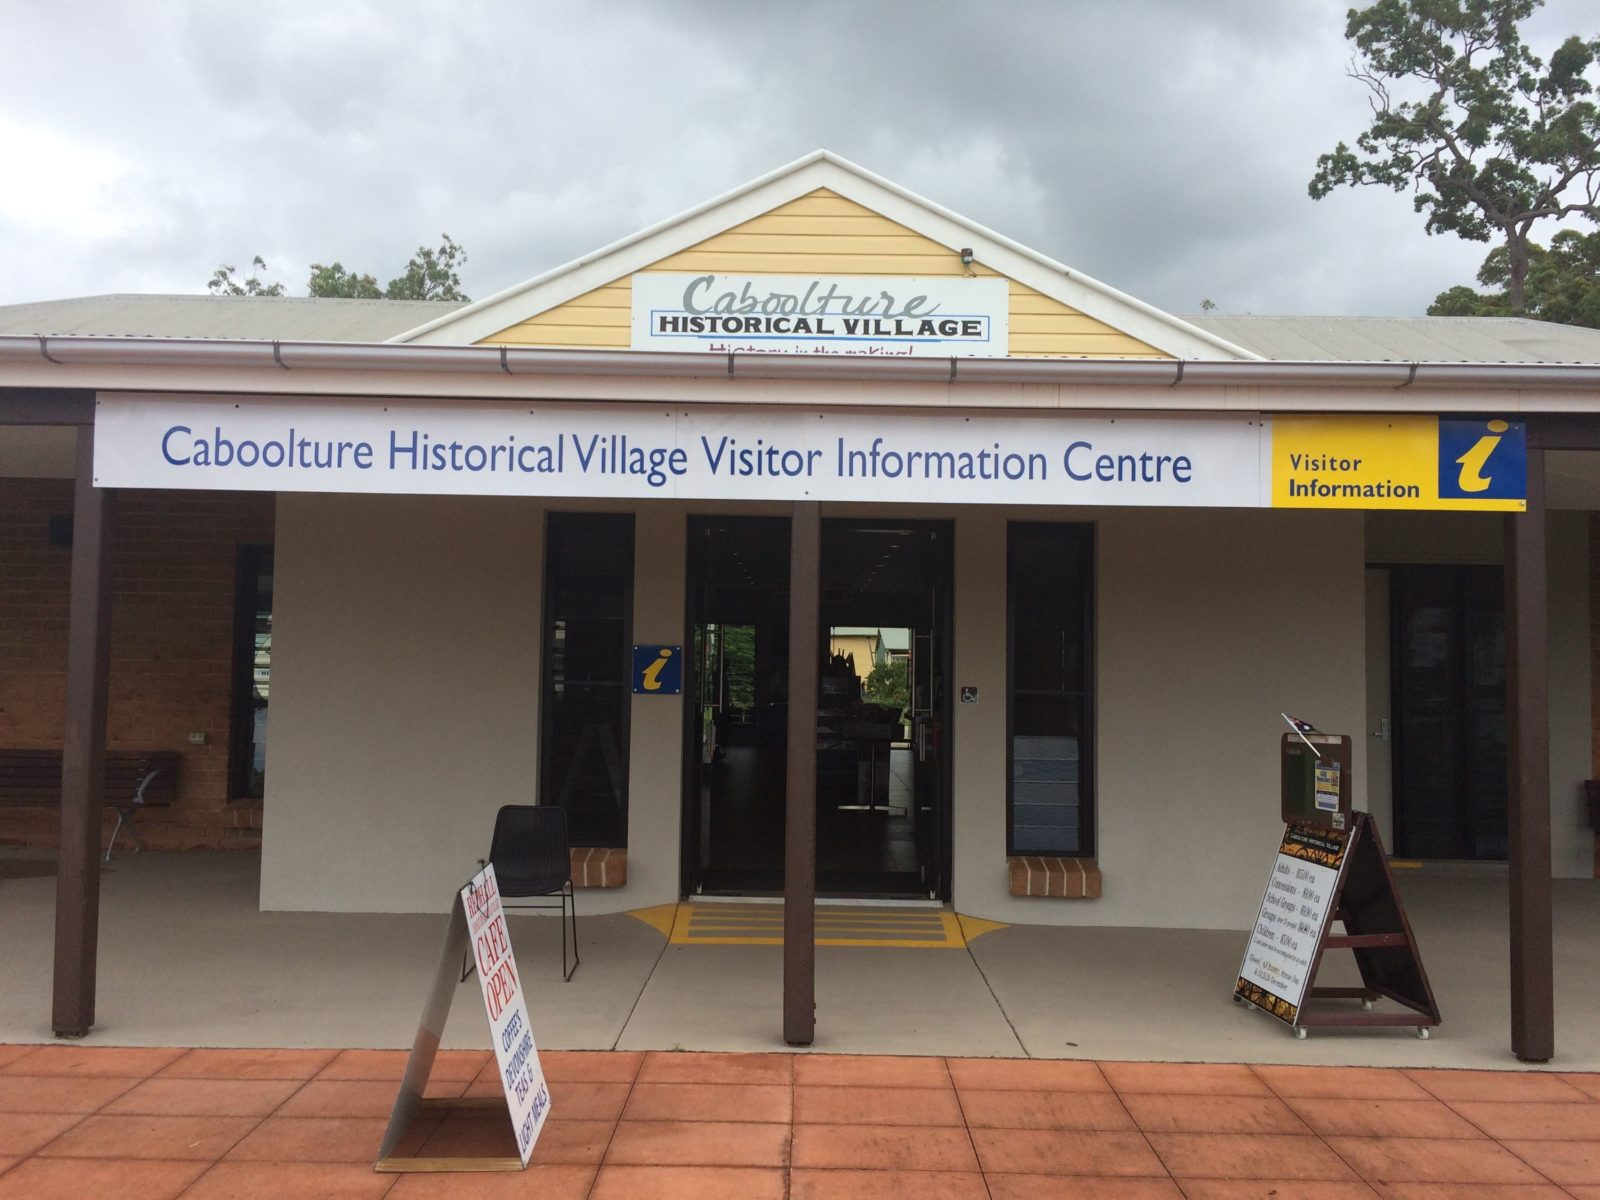 Caboolture Historical Village Visitor Information Centre